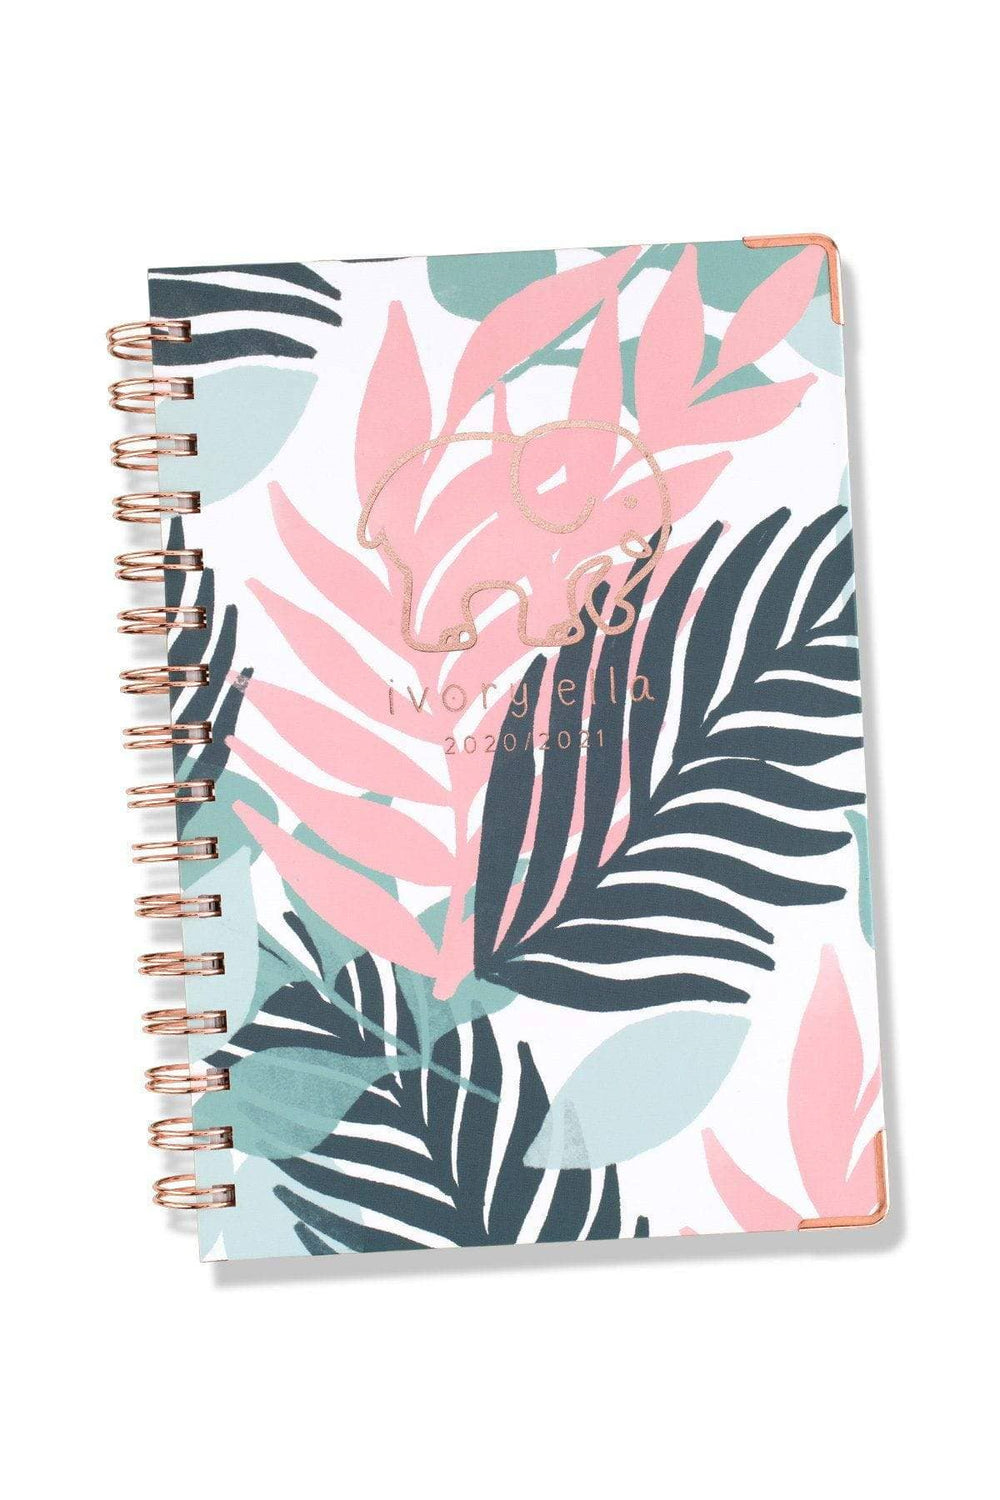 Ivory Ella W Office Floral Ivory Ella Small Planner